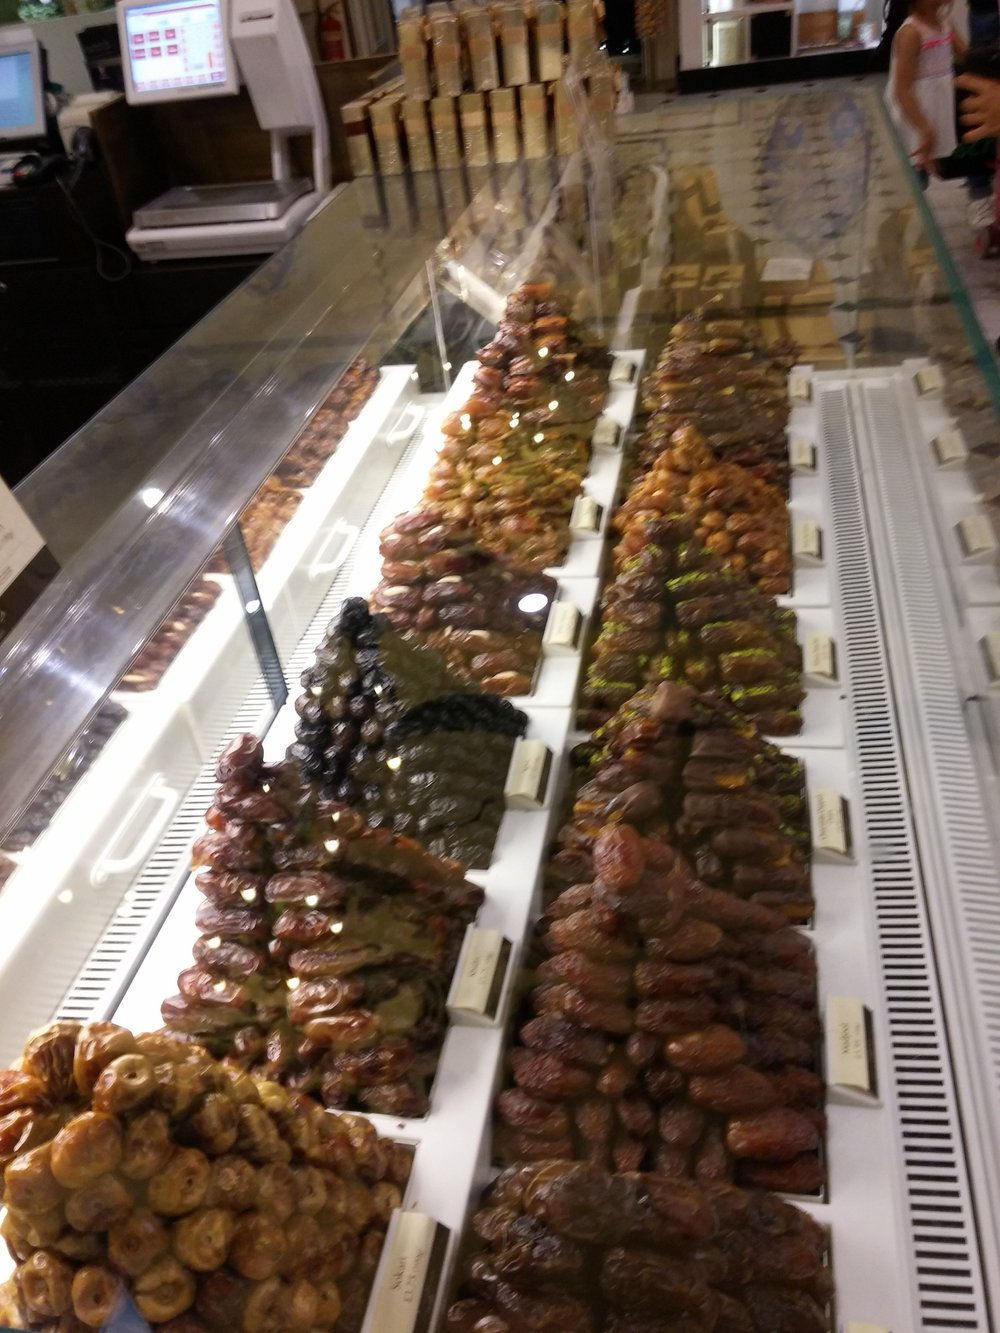 Harrods definitely is targeting a certain client here... have you ever seen so many DATES?!